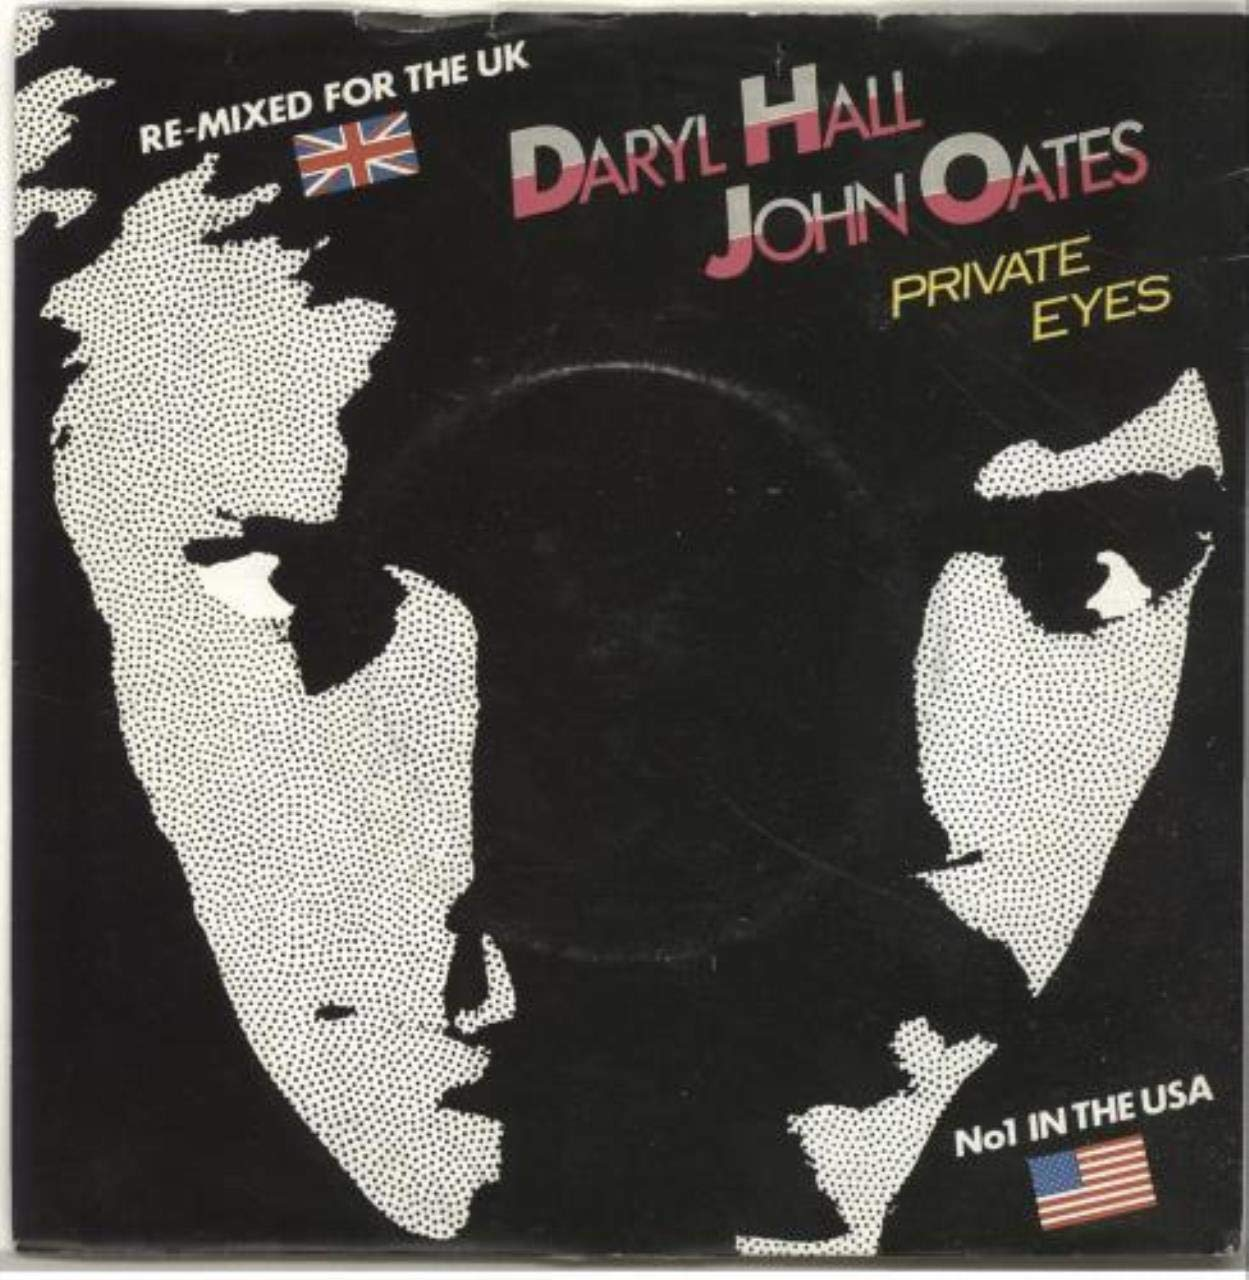 Private Eyes (1981) vinyl 7 inch